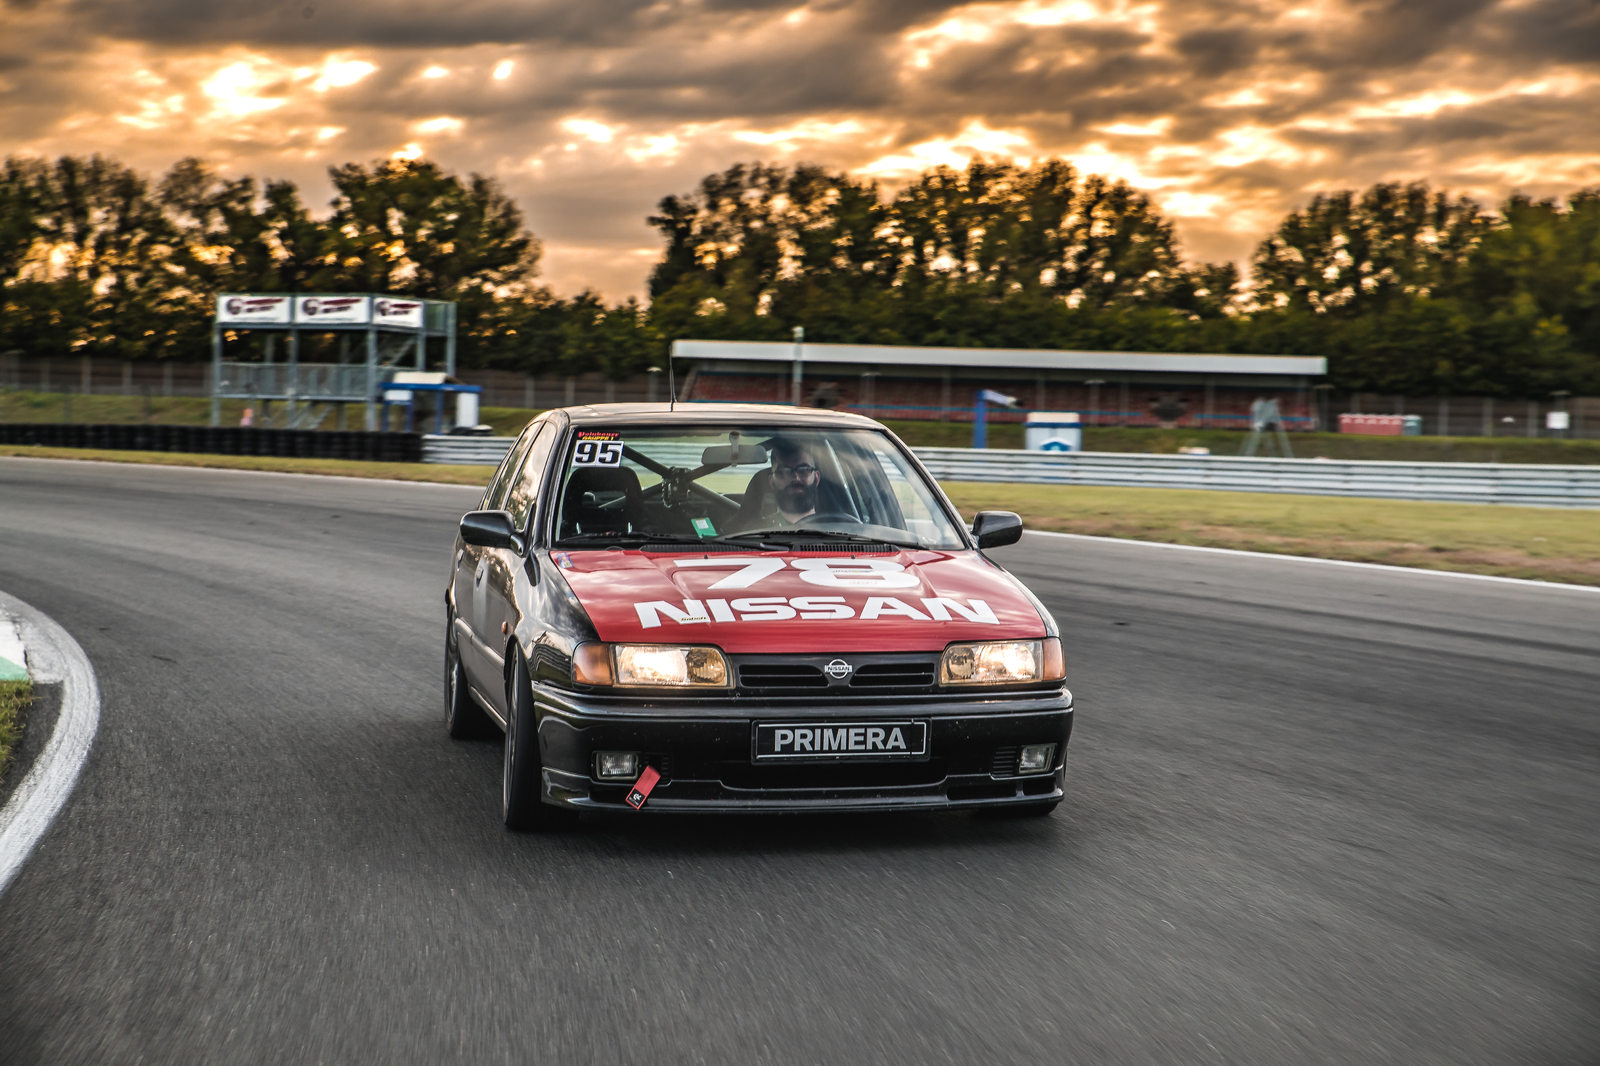 Polybauer Trackday 2020